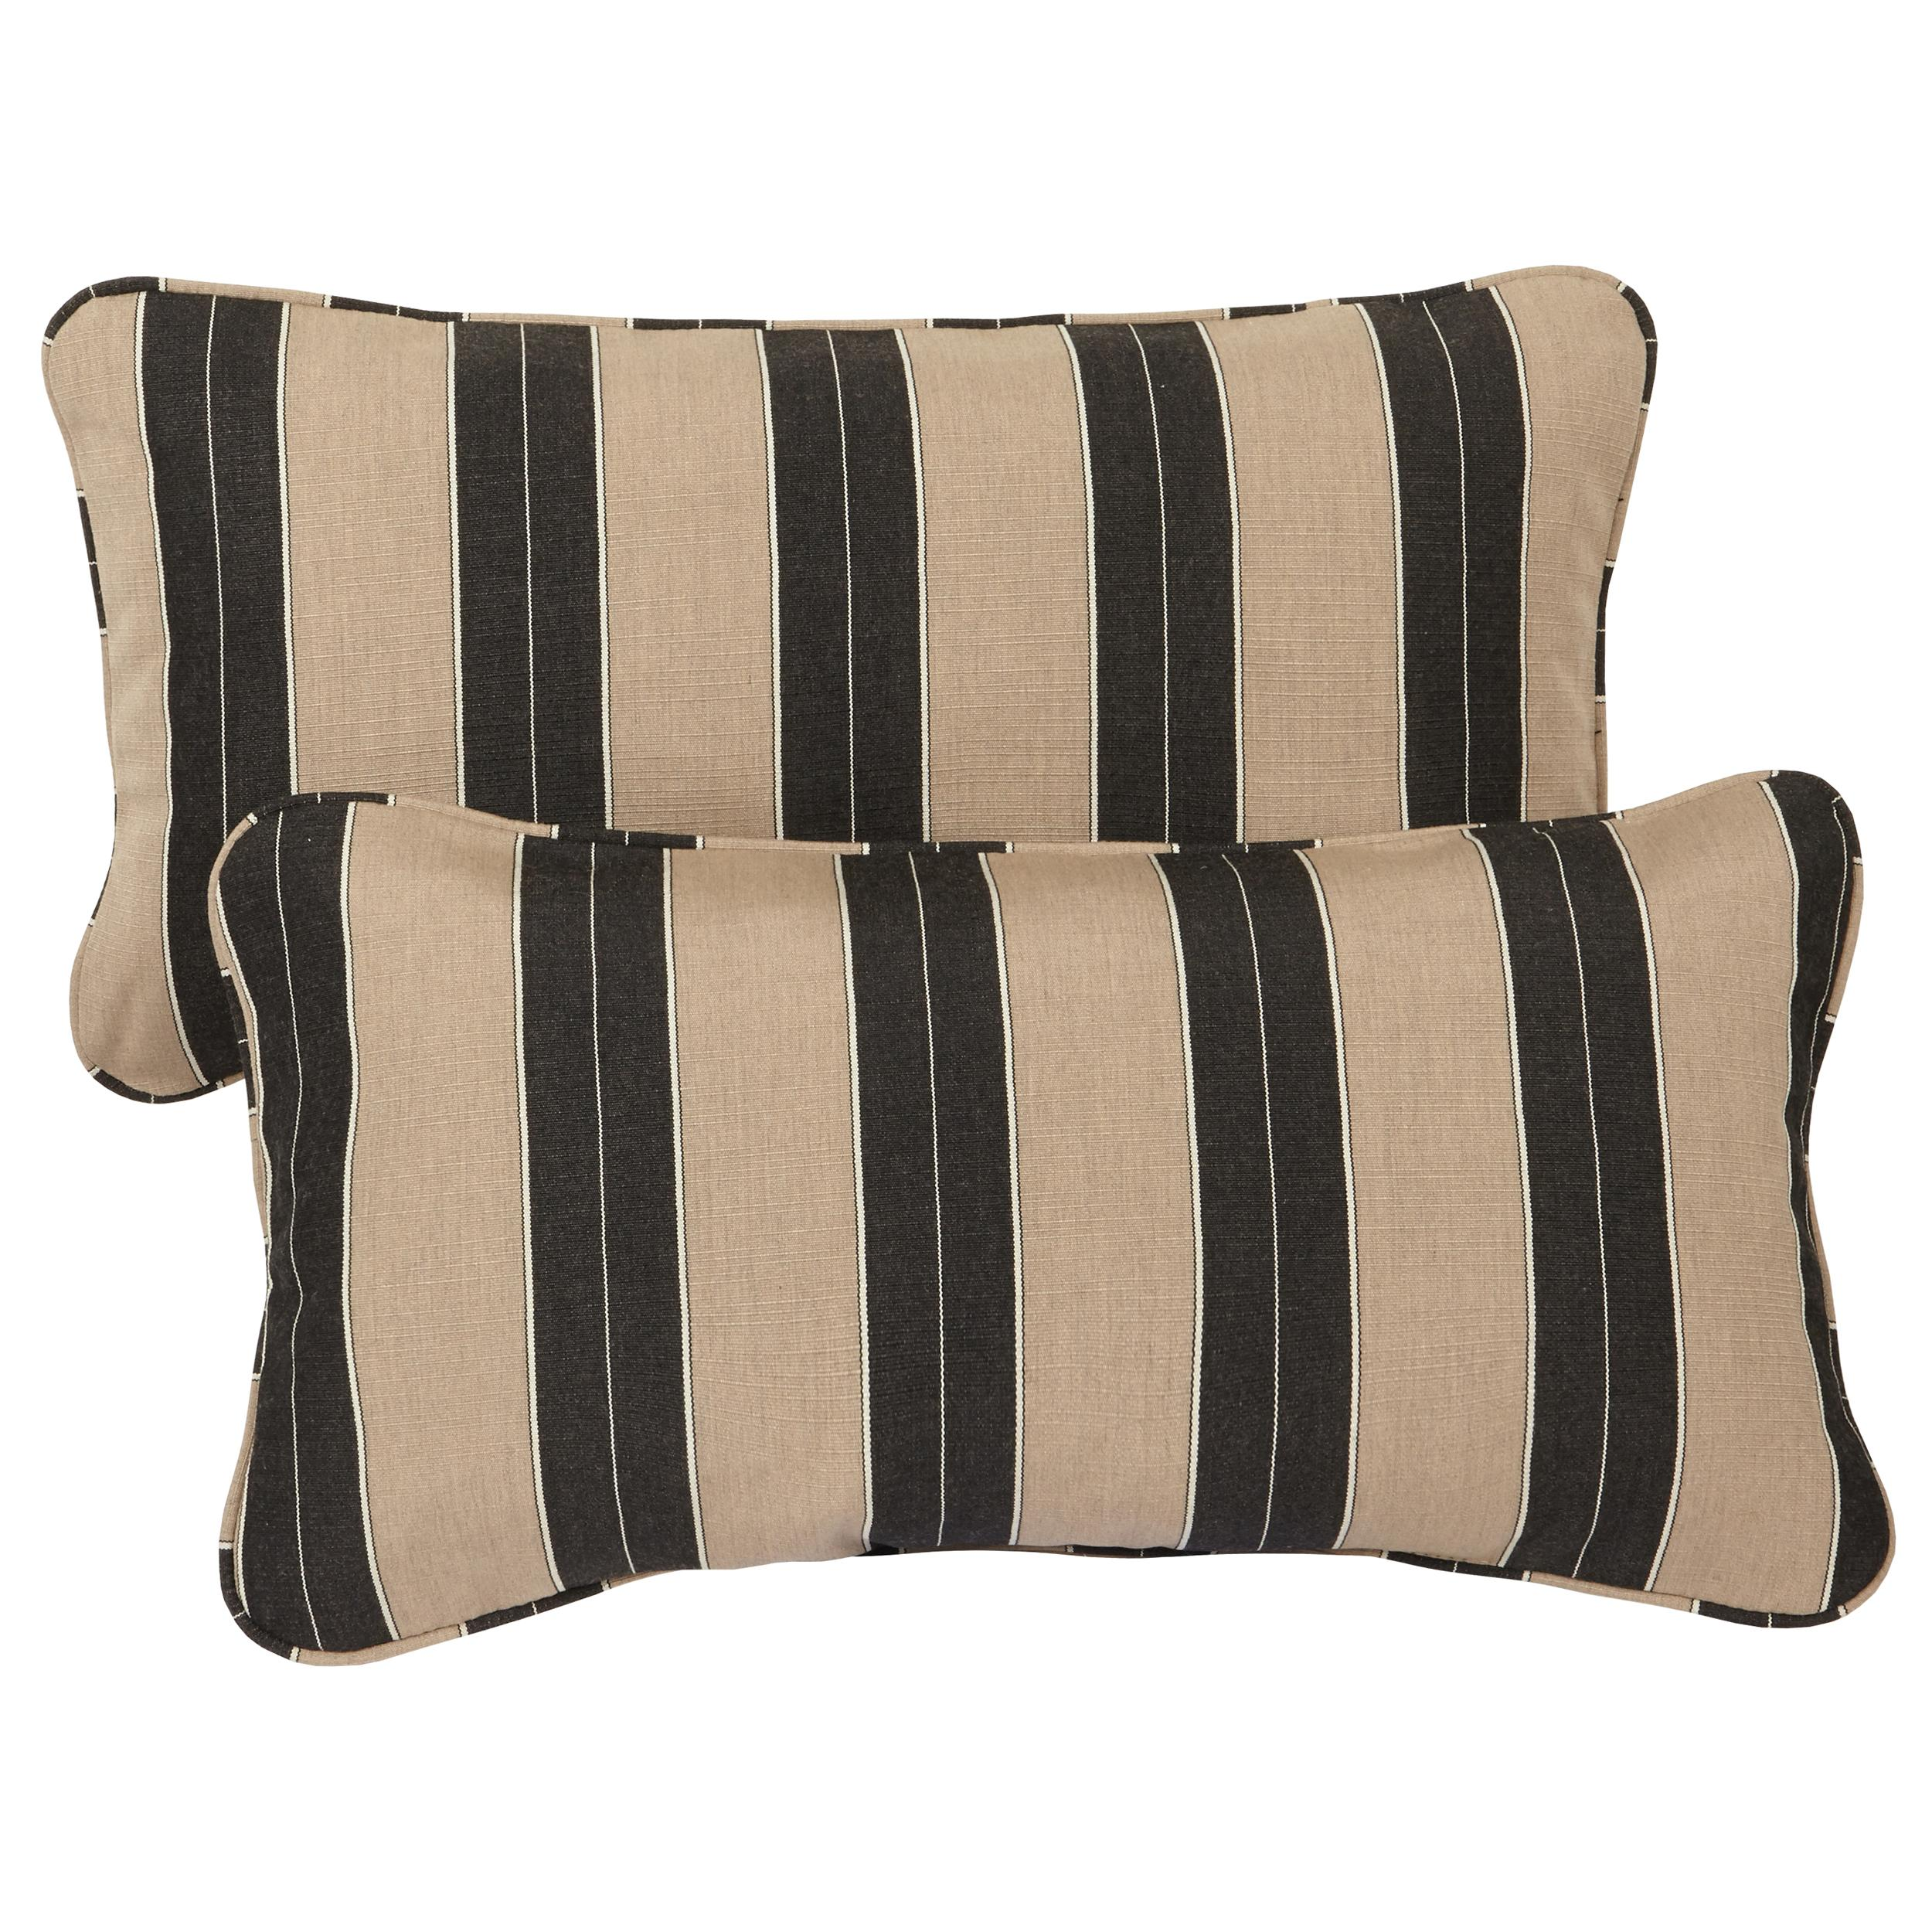 Black And Beige Decorative Pillows : Amazon.com : Mozaic Corded Indoor/Outdoor Lumbar Throw Pillows, 12 by 24-Inch, Black/Beige ...